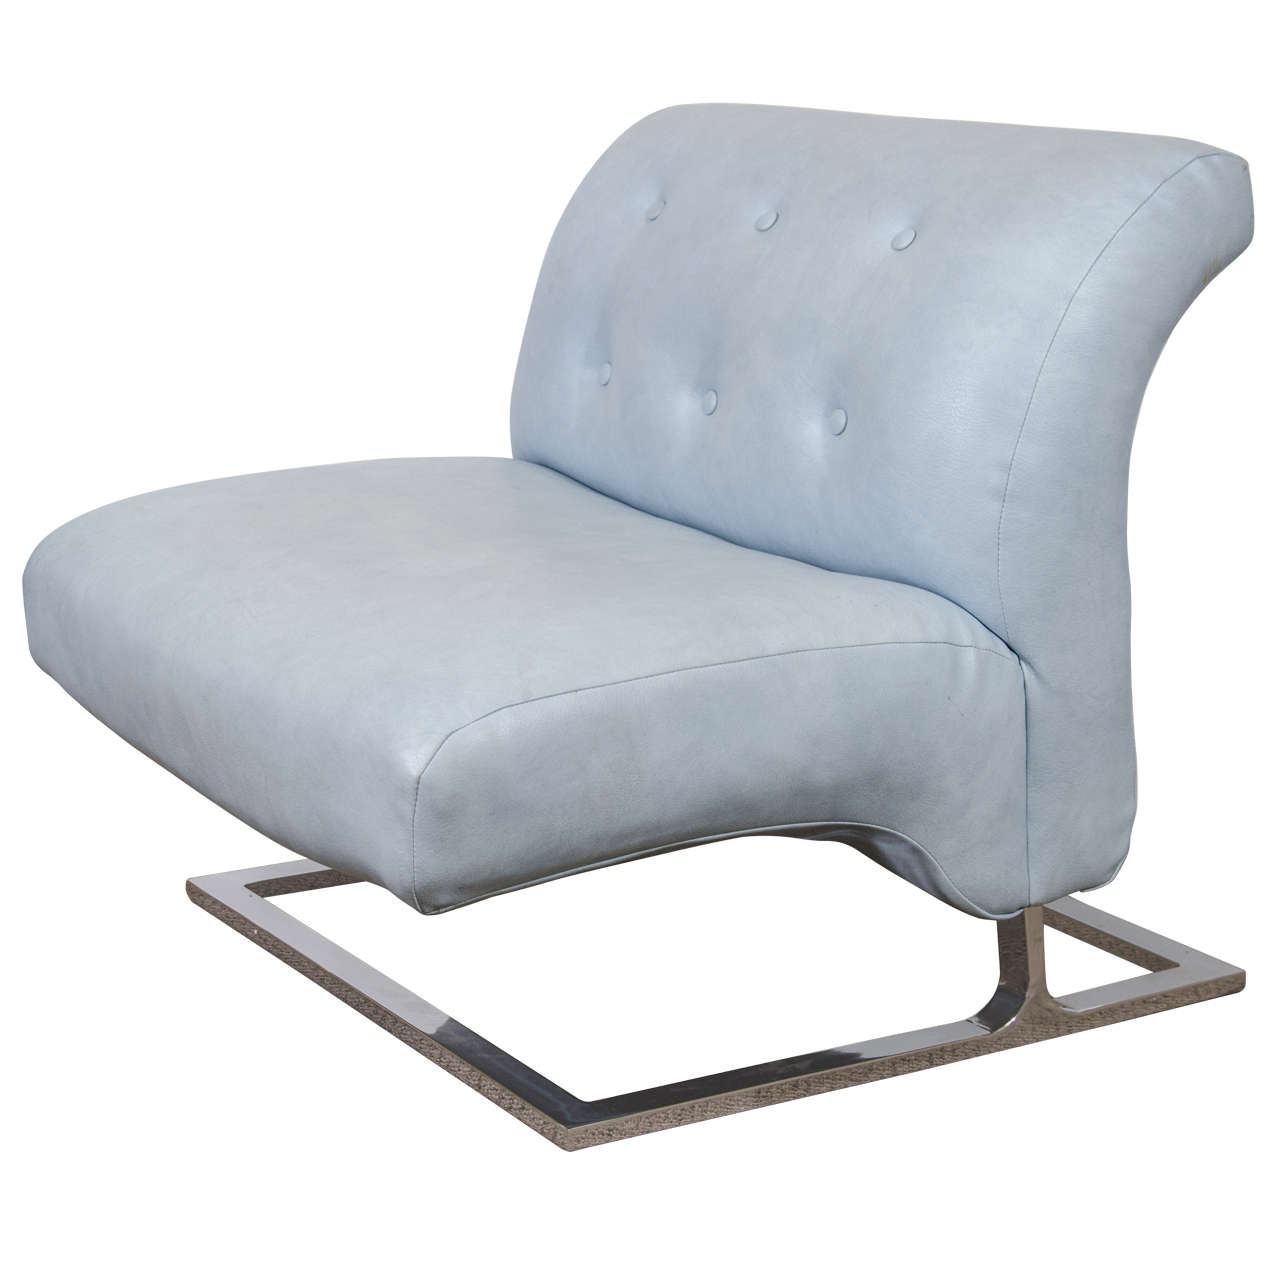 Blue Slipper Chair A Thayer Coggin Oversized Lounge Slipper Chair In Powder